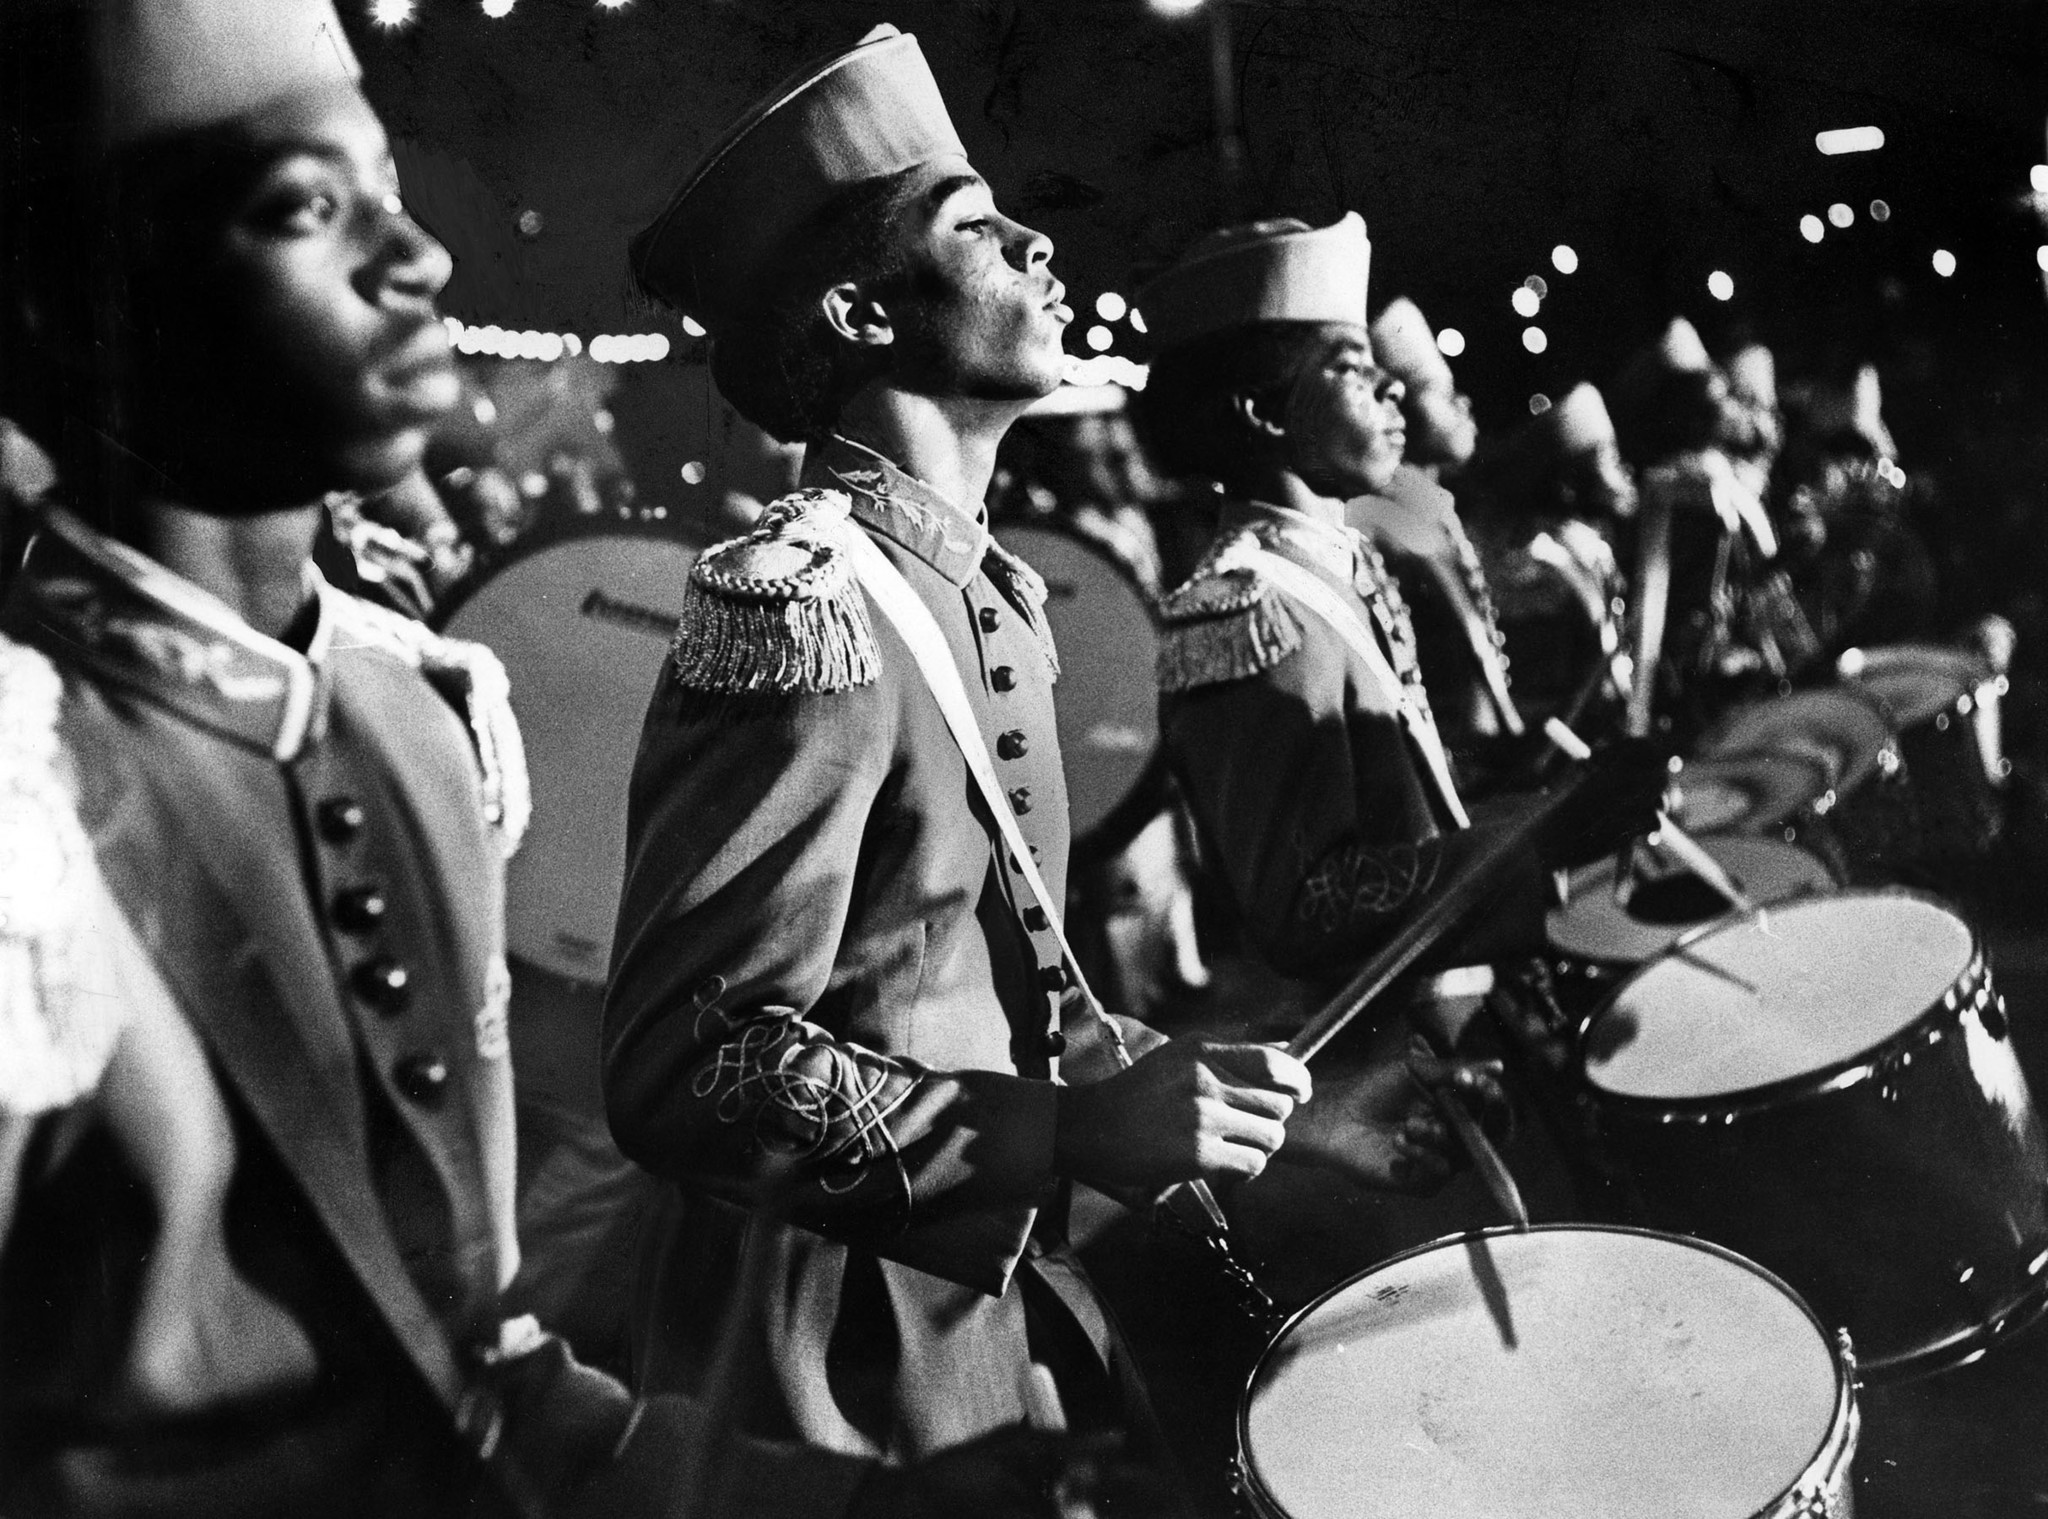 Nov. 28, 1976: Drummers in the Locke High School Band step out at 45th annual Hollywood Santa Claus